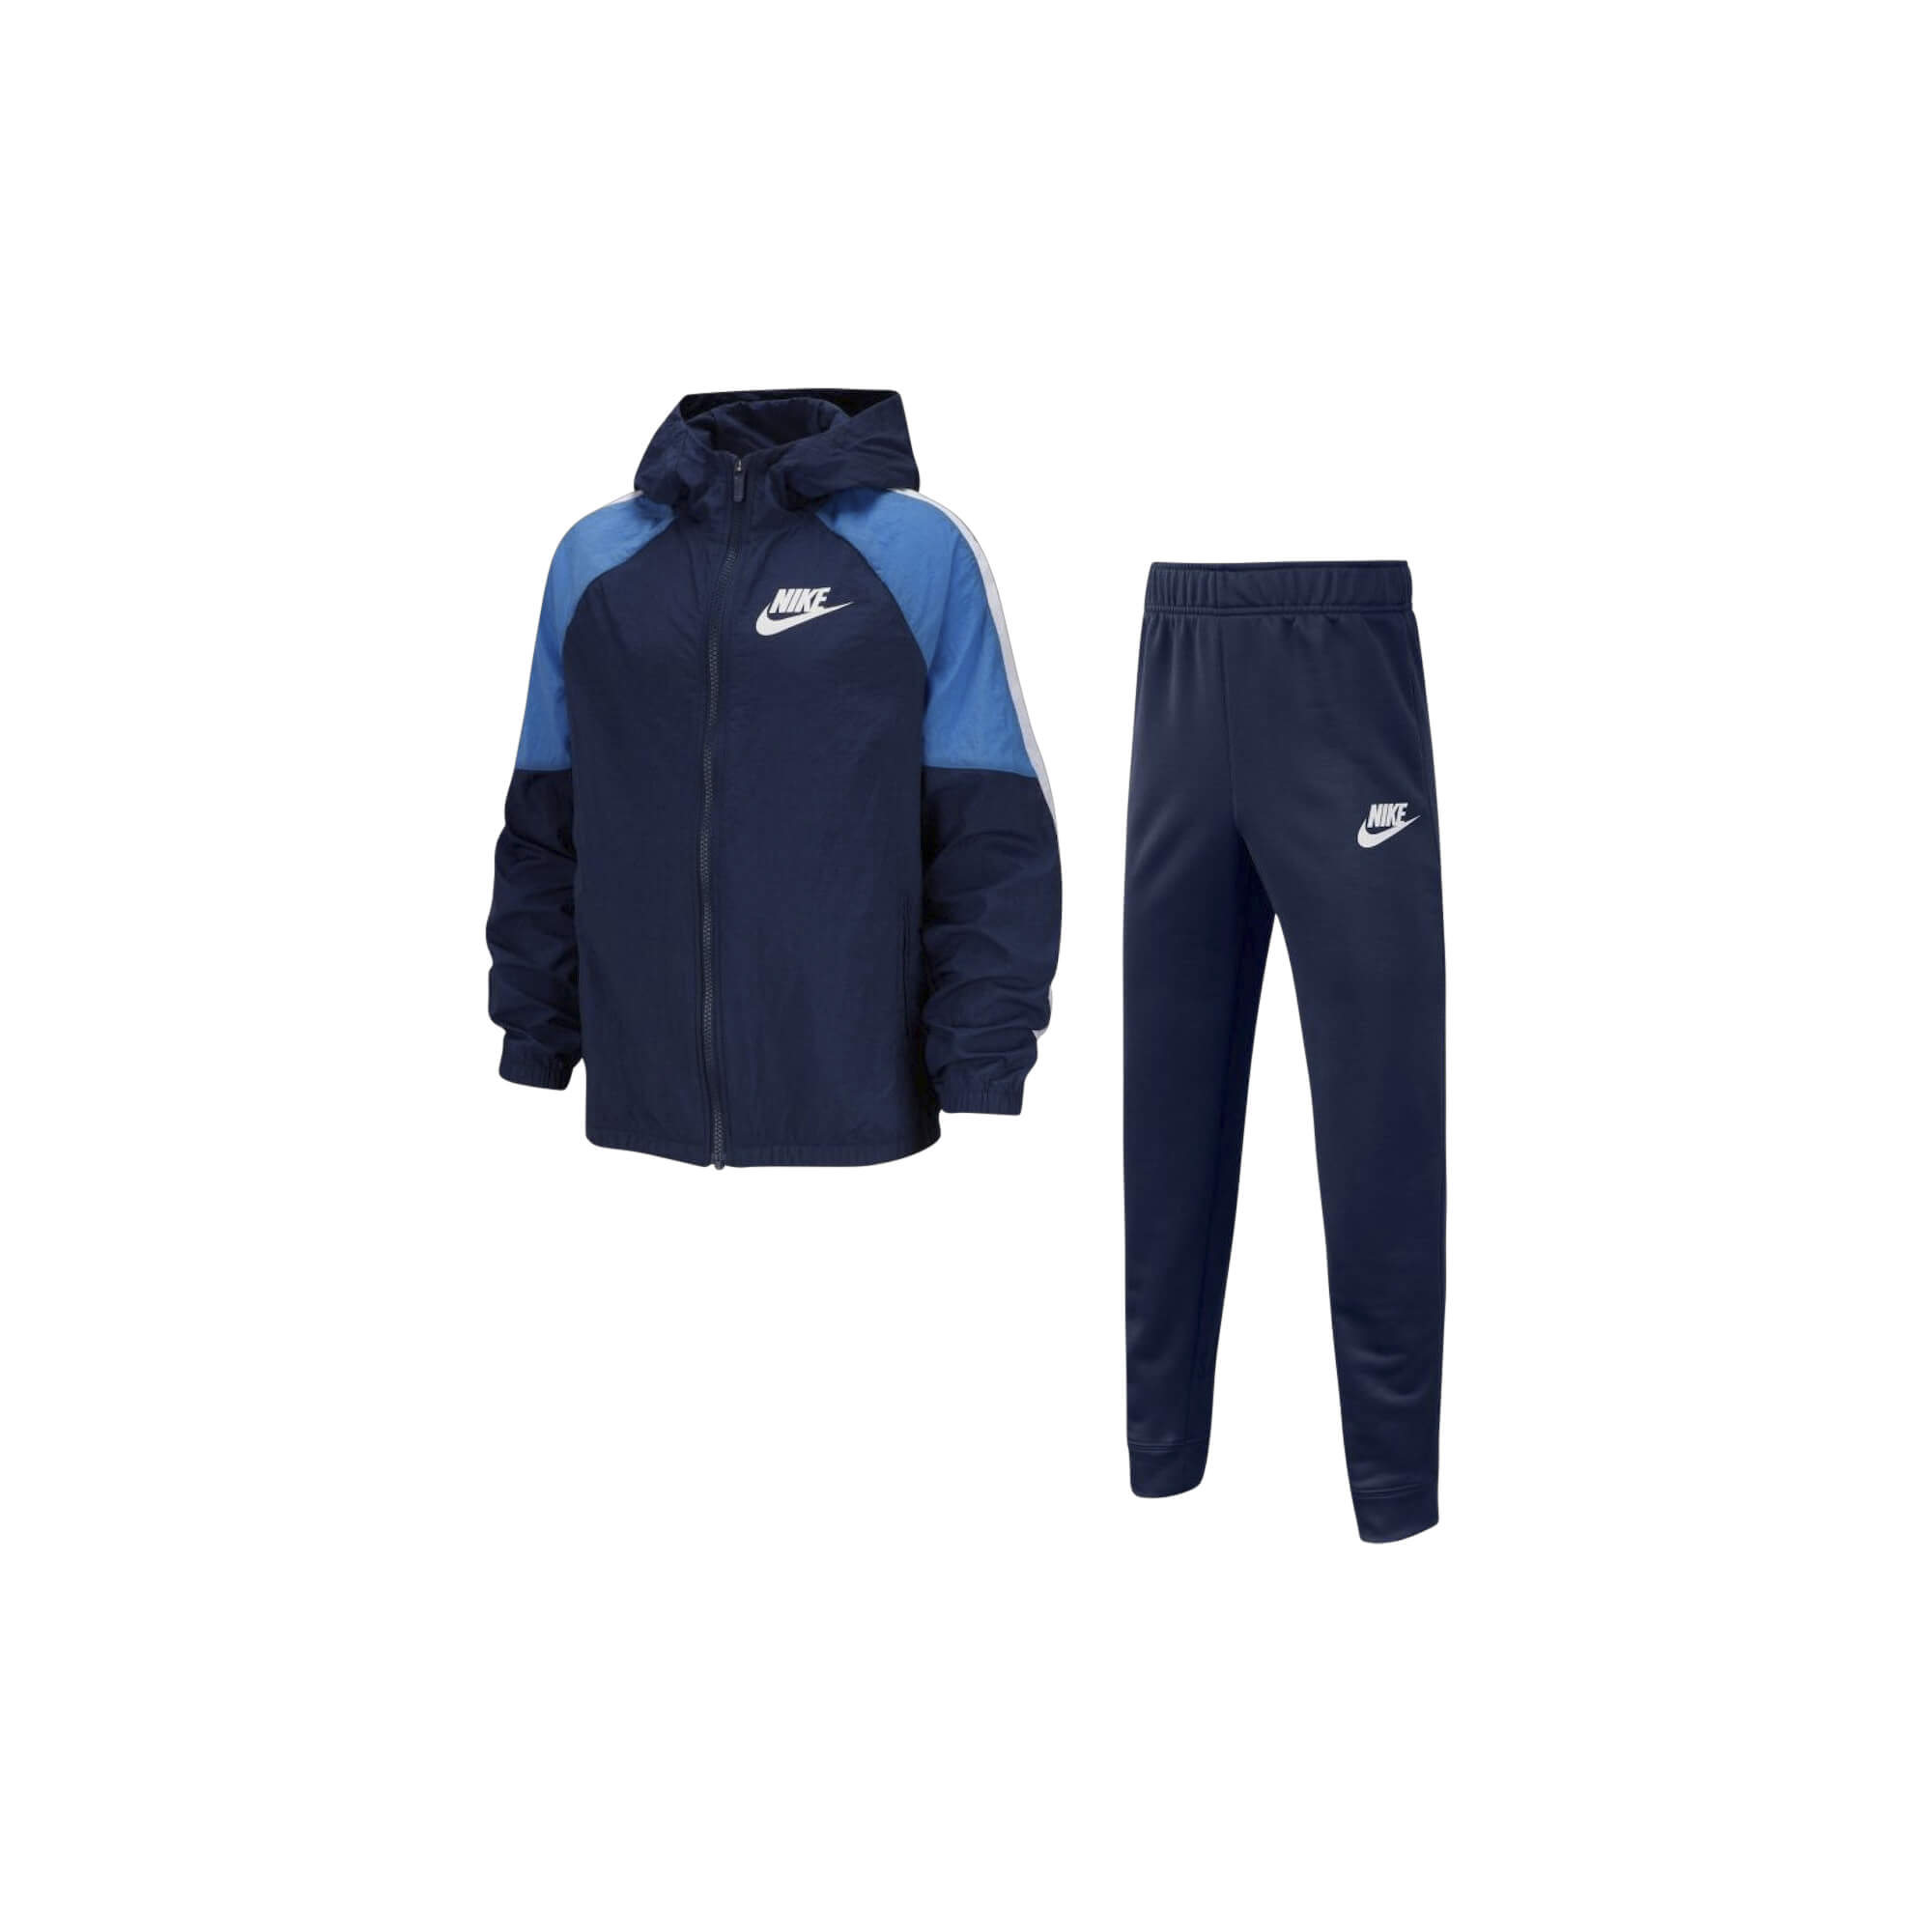 B Nsw Woven Tracksuit